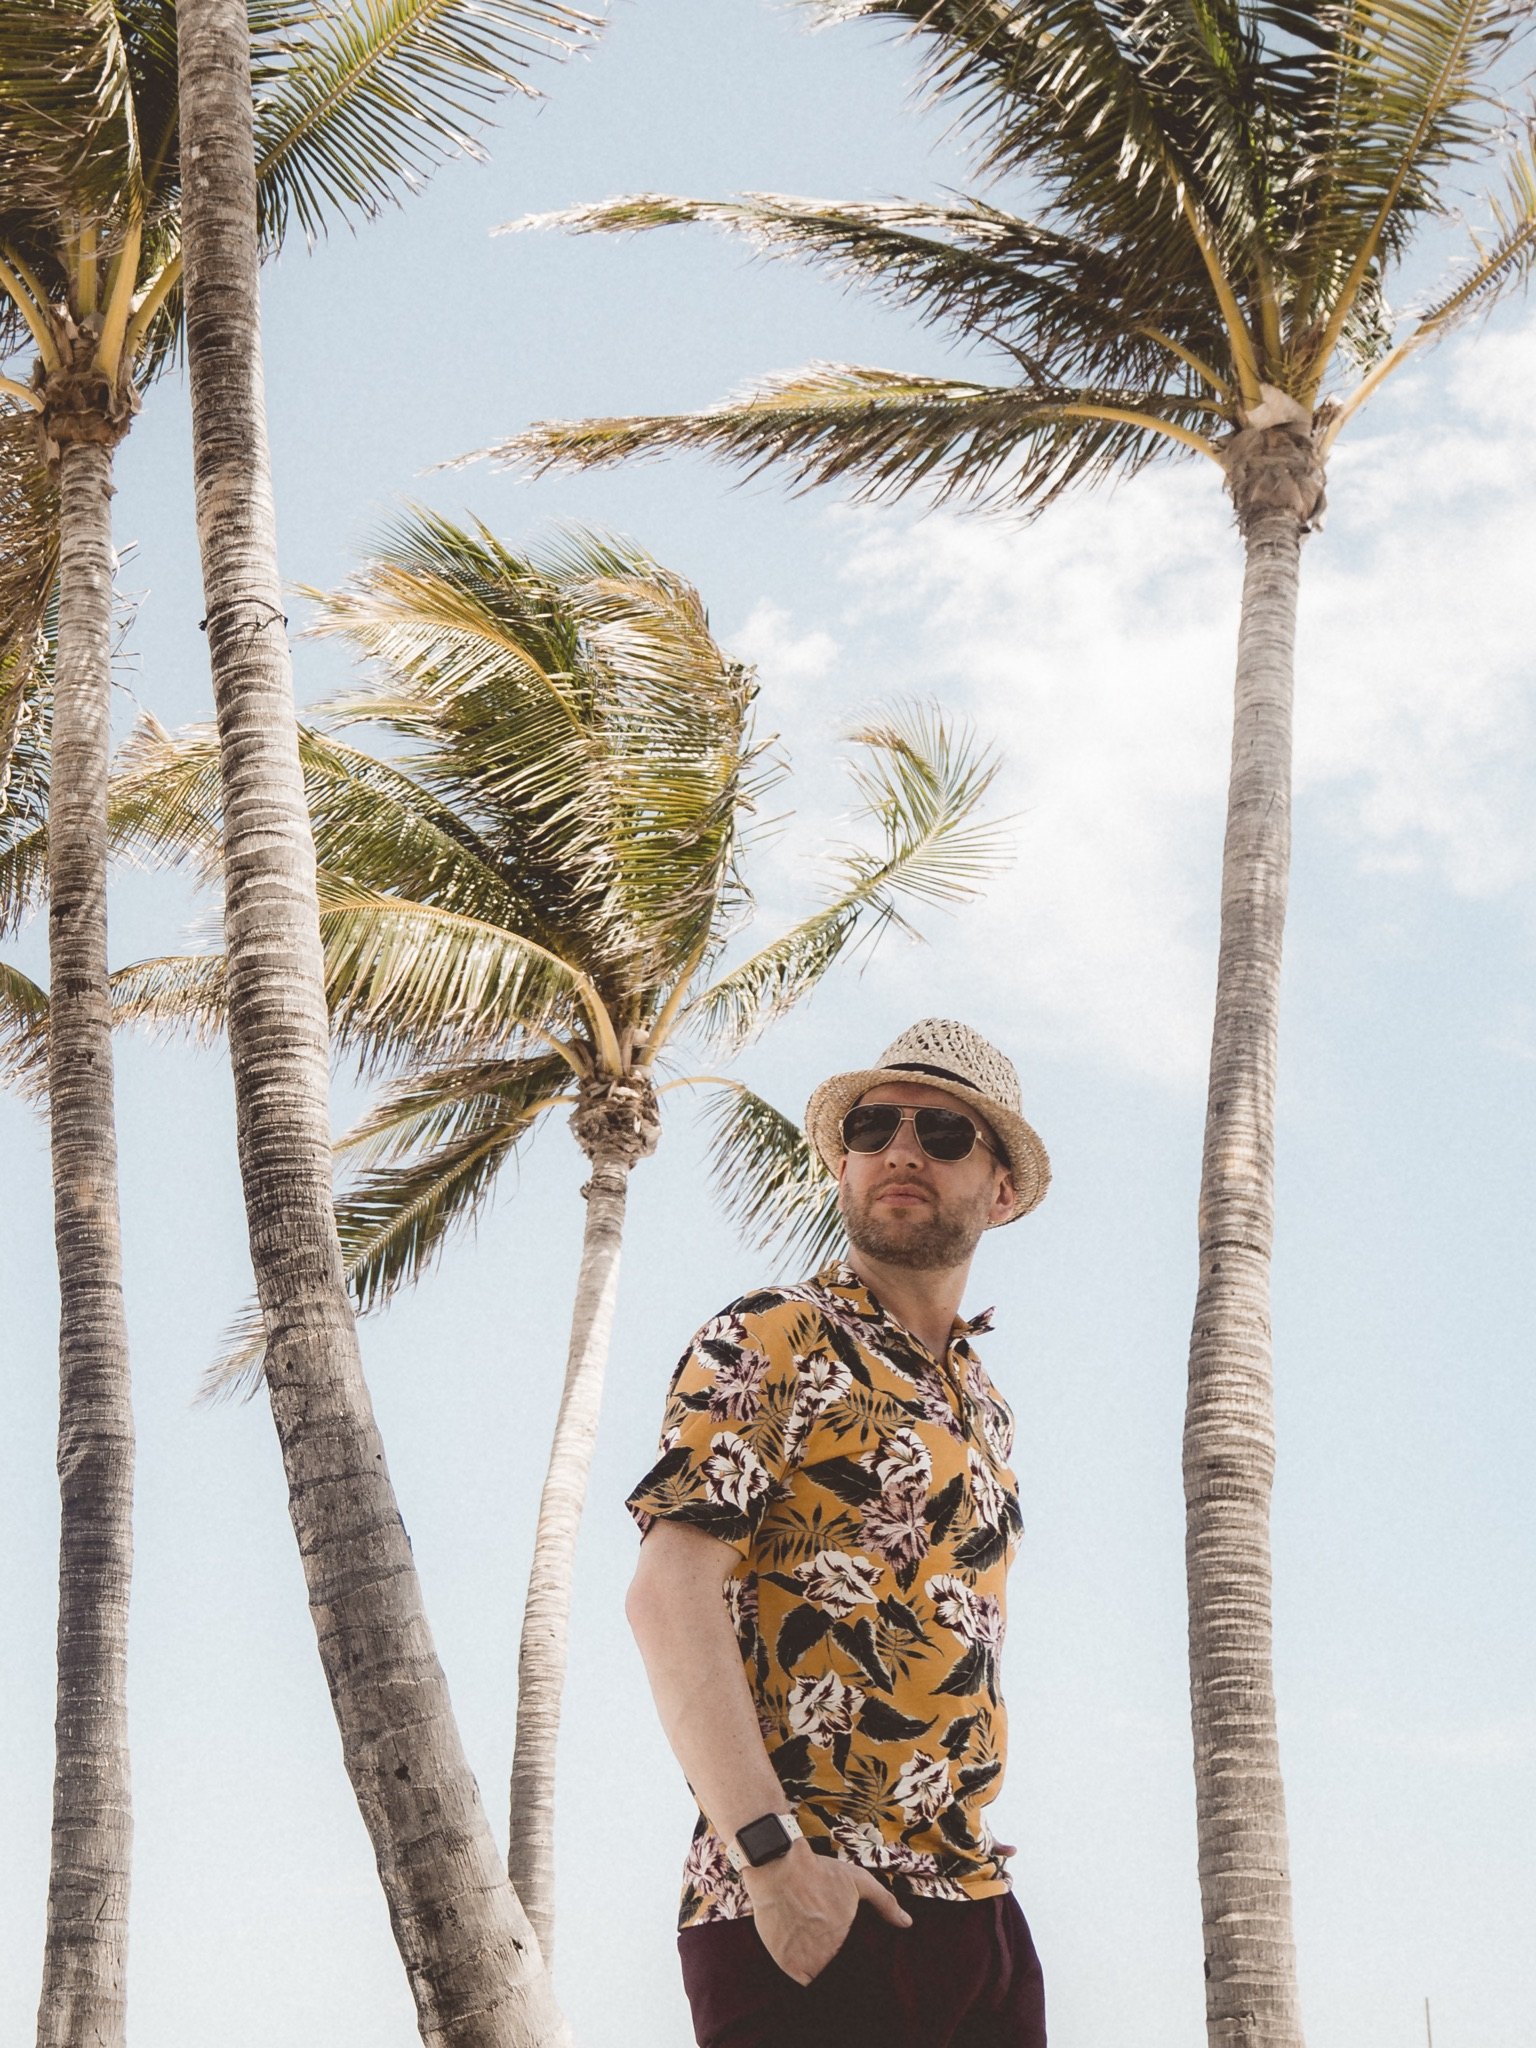 Jay McLaughlin Miami Palm Trees Photographer Blogger Influencer